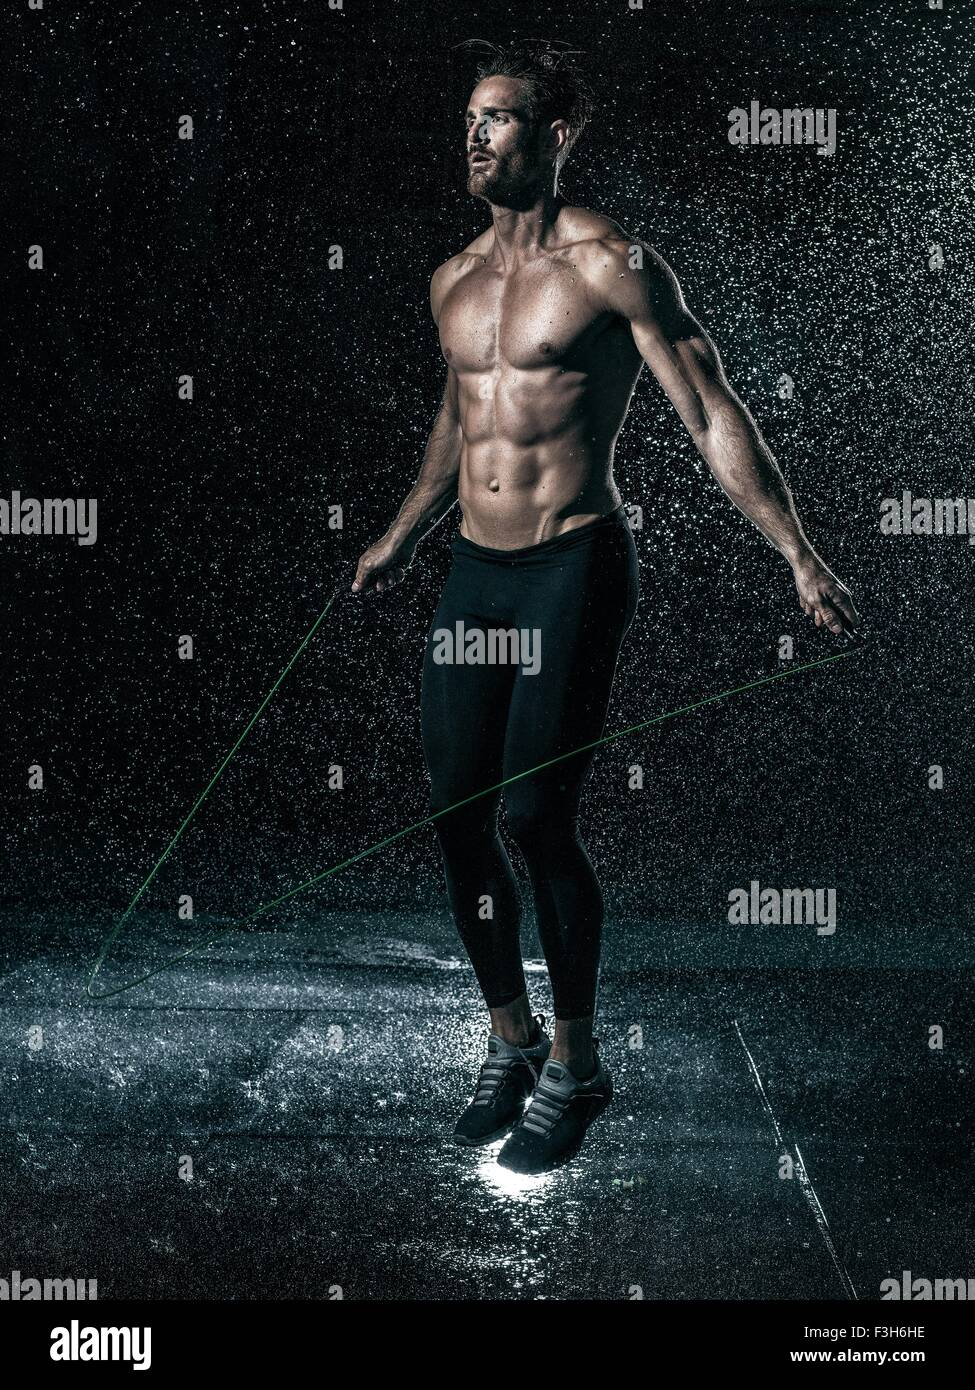 MId adult man, outdoors, skipping in rain - Stock Image